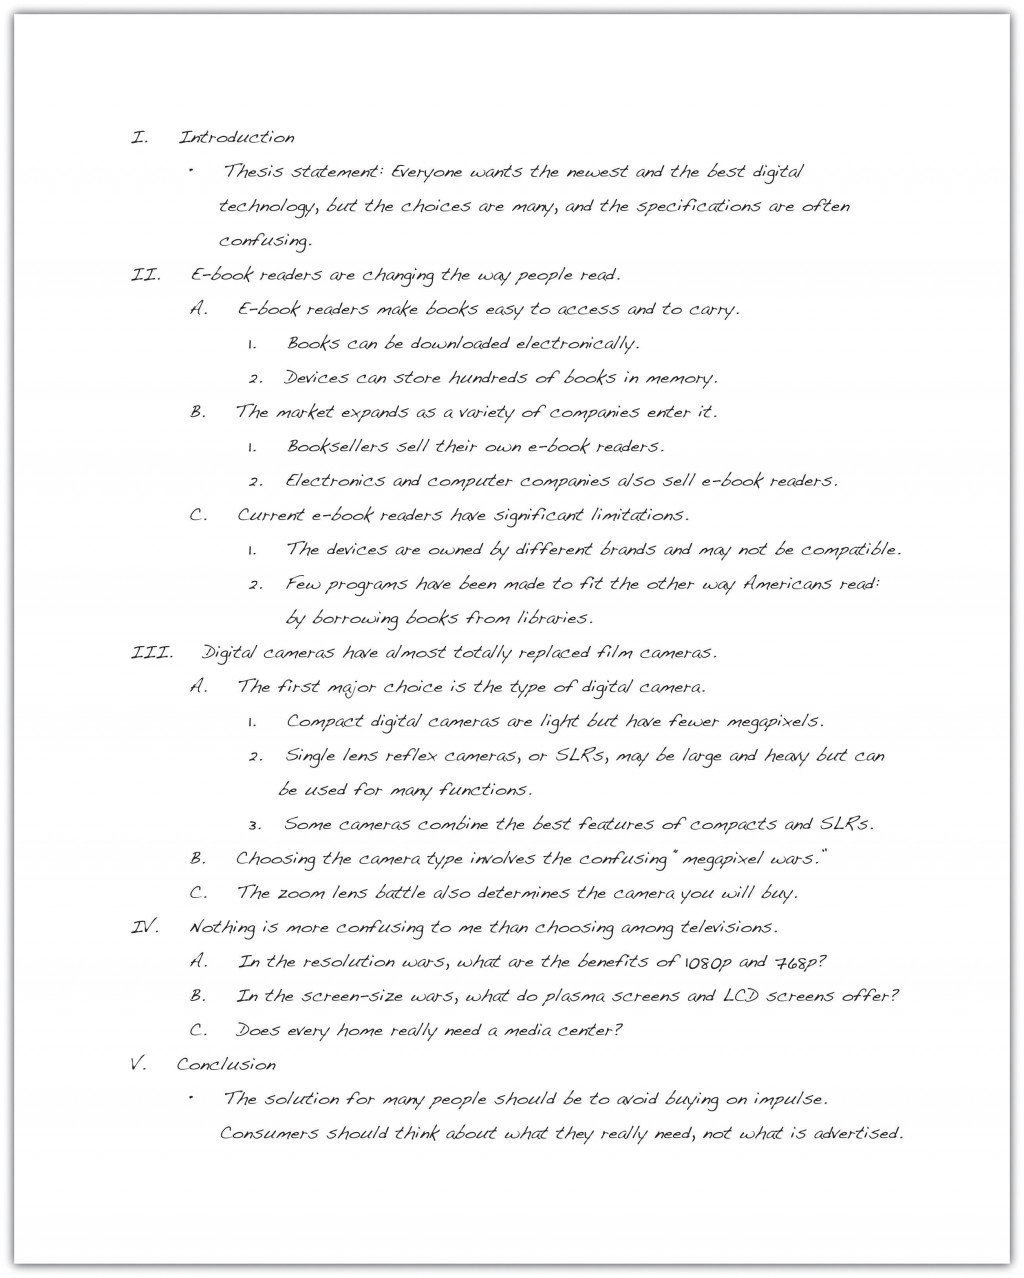 001 Research Papermal Sentence Outline Marvelous Formal For Paper Large